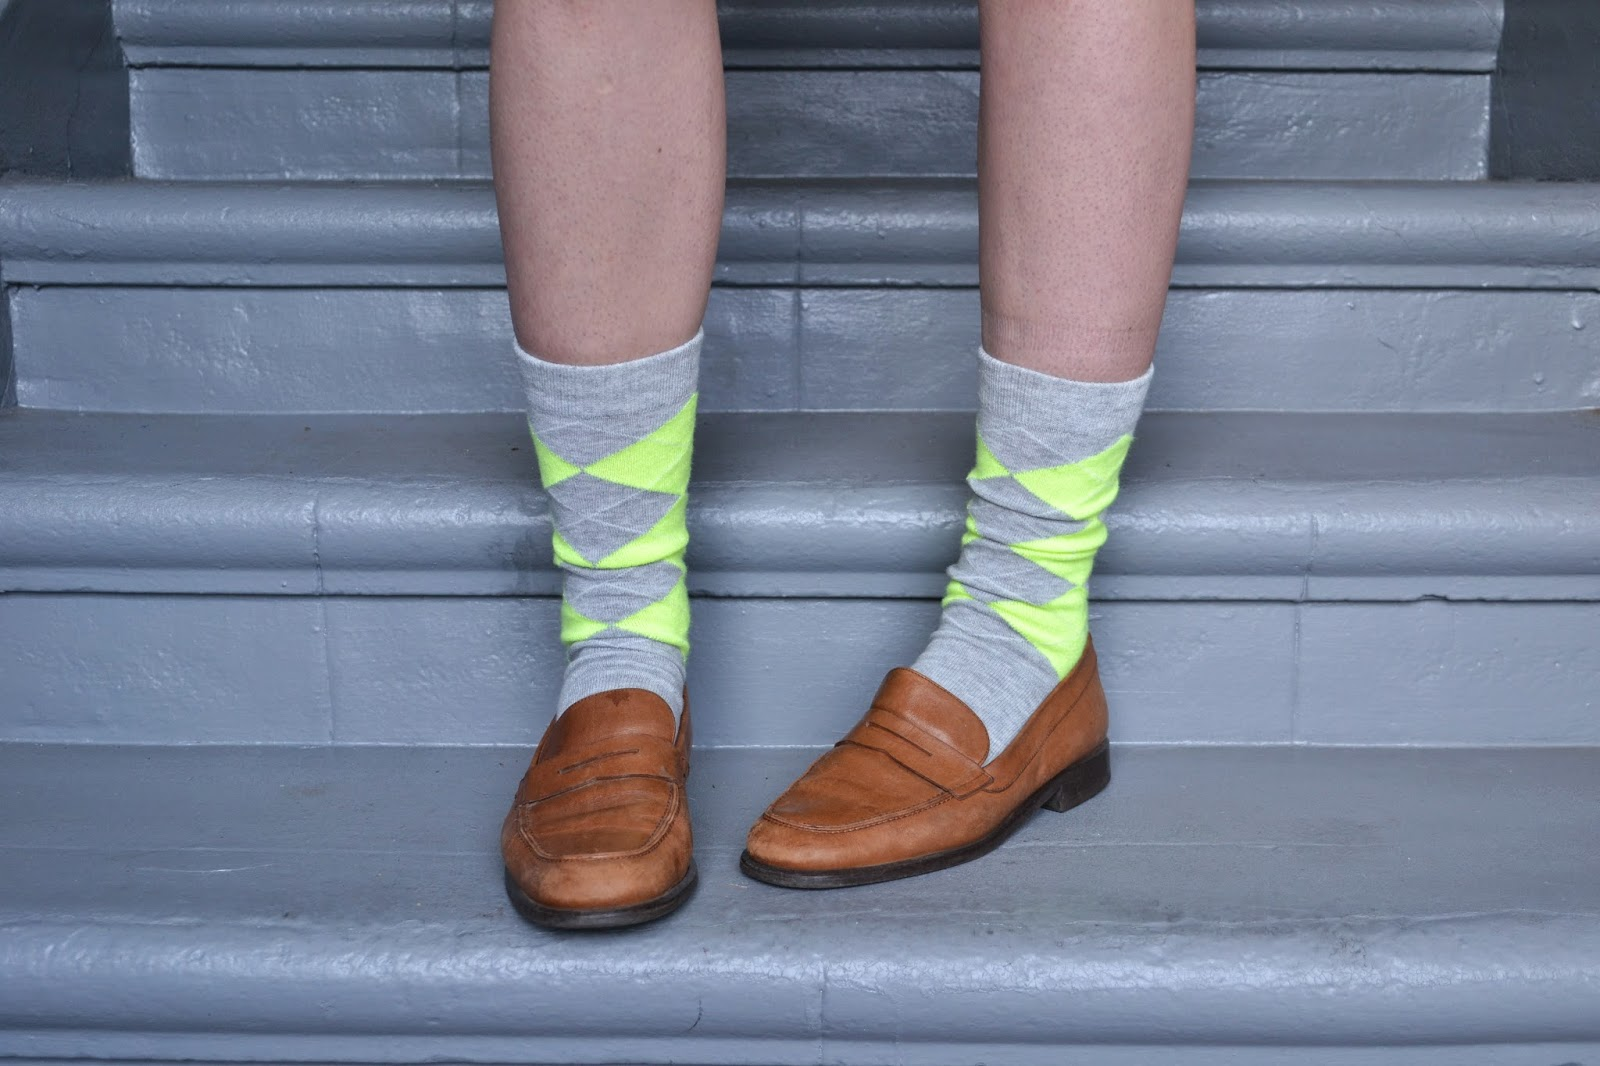 argyle, socks, neon, school girl, school boy, fashion, accessories